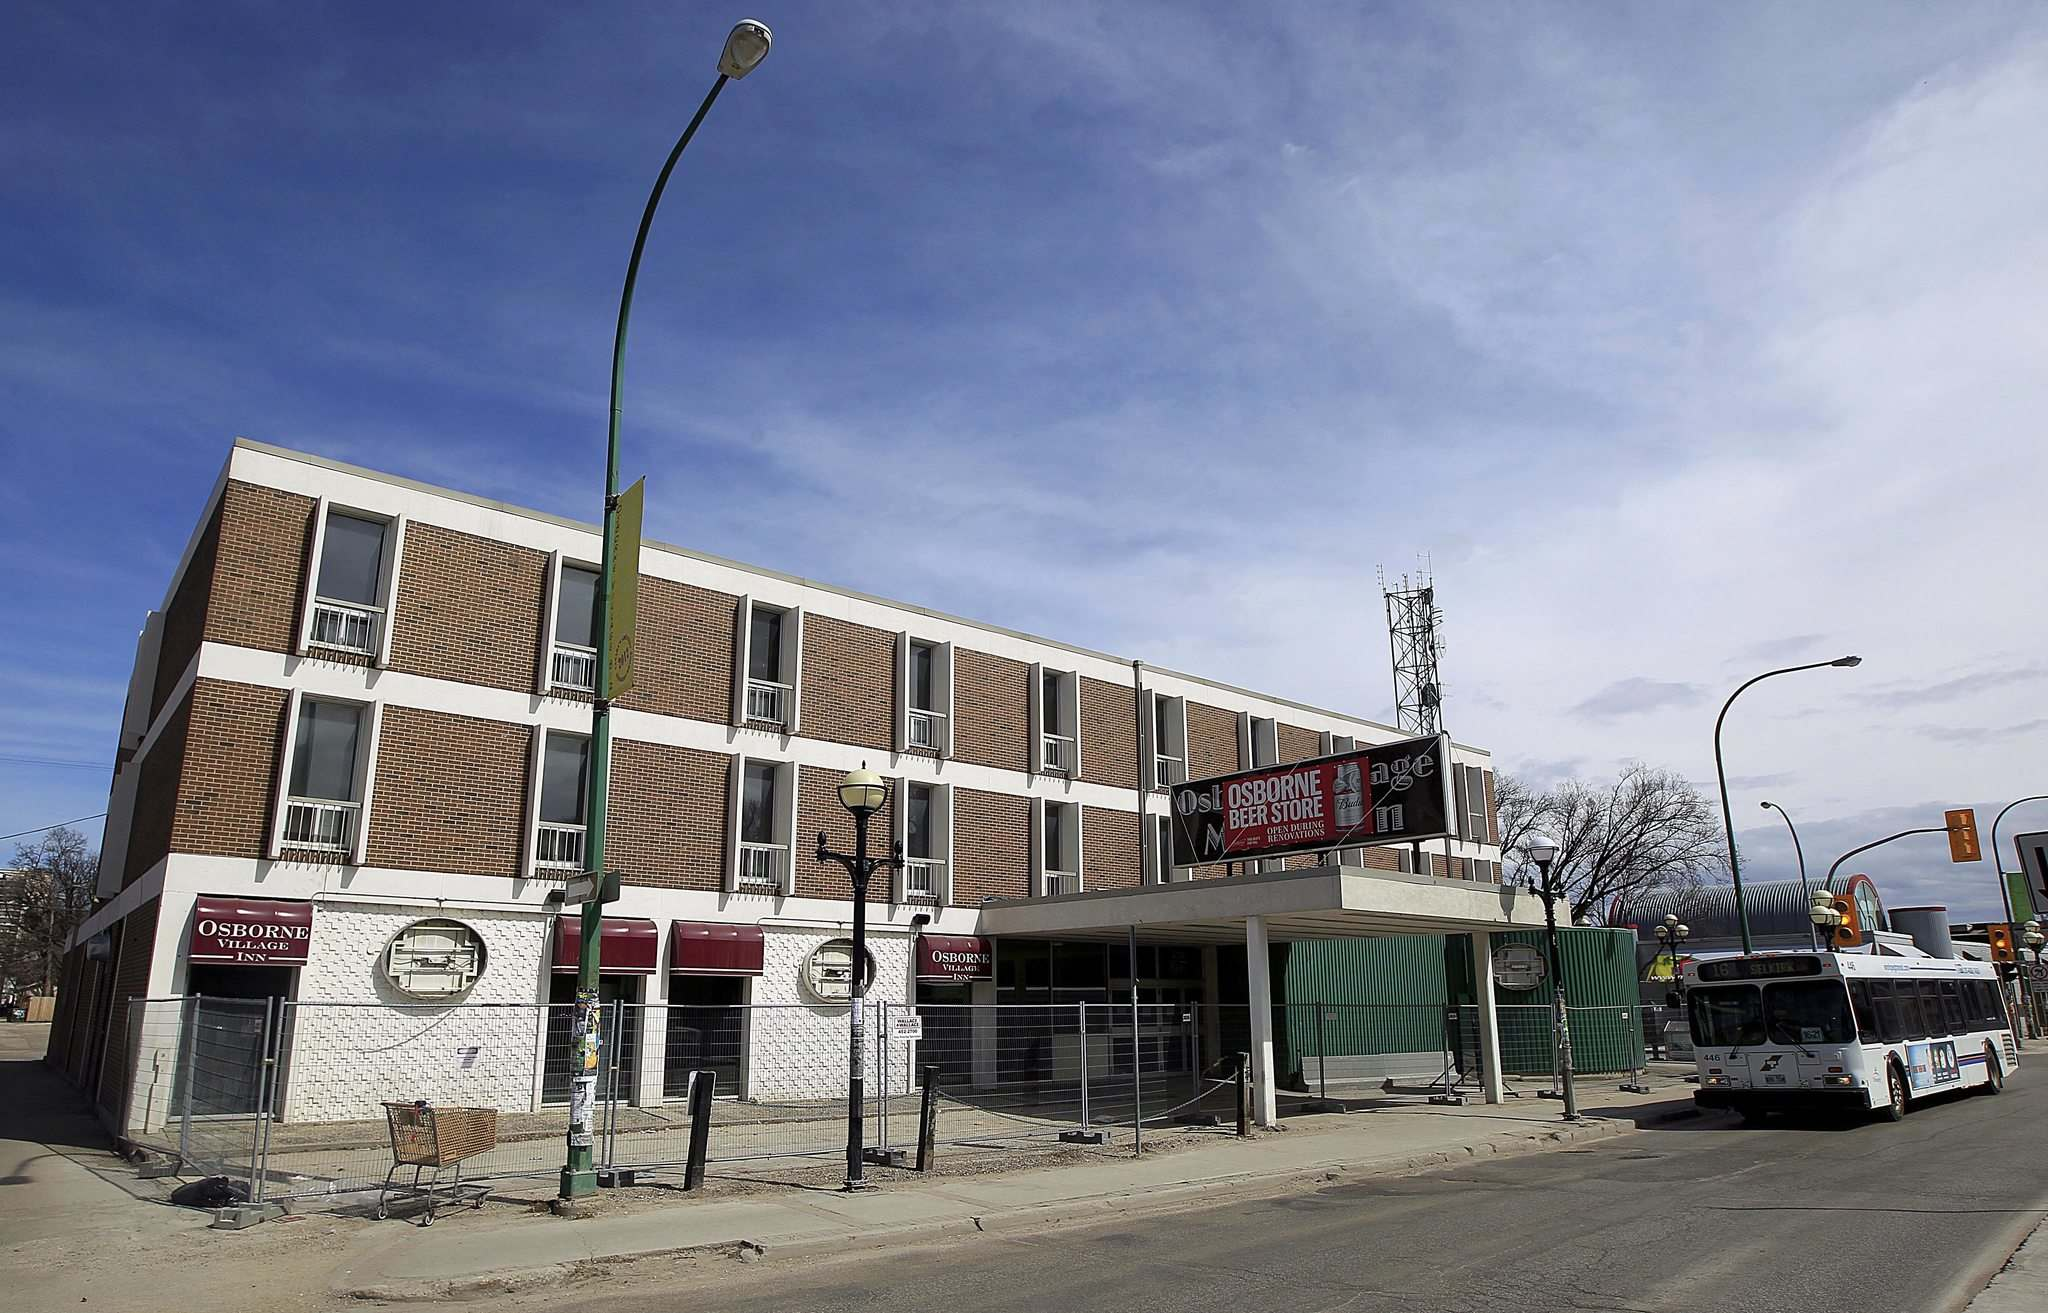 PHIL HOSSACK / WINNIPEG FREE PRESS files</p><p>Restaurants and office space will call the Osborne Village home once renovations are done. A plan to install micro-apartments was scrapped.</p></p>